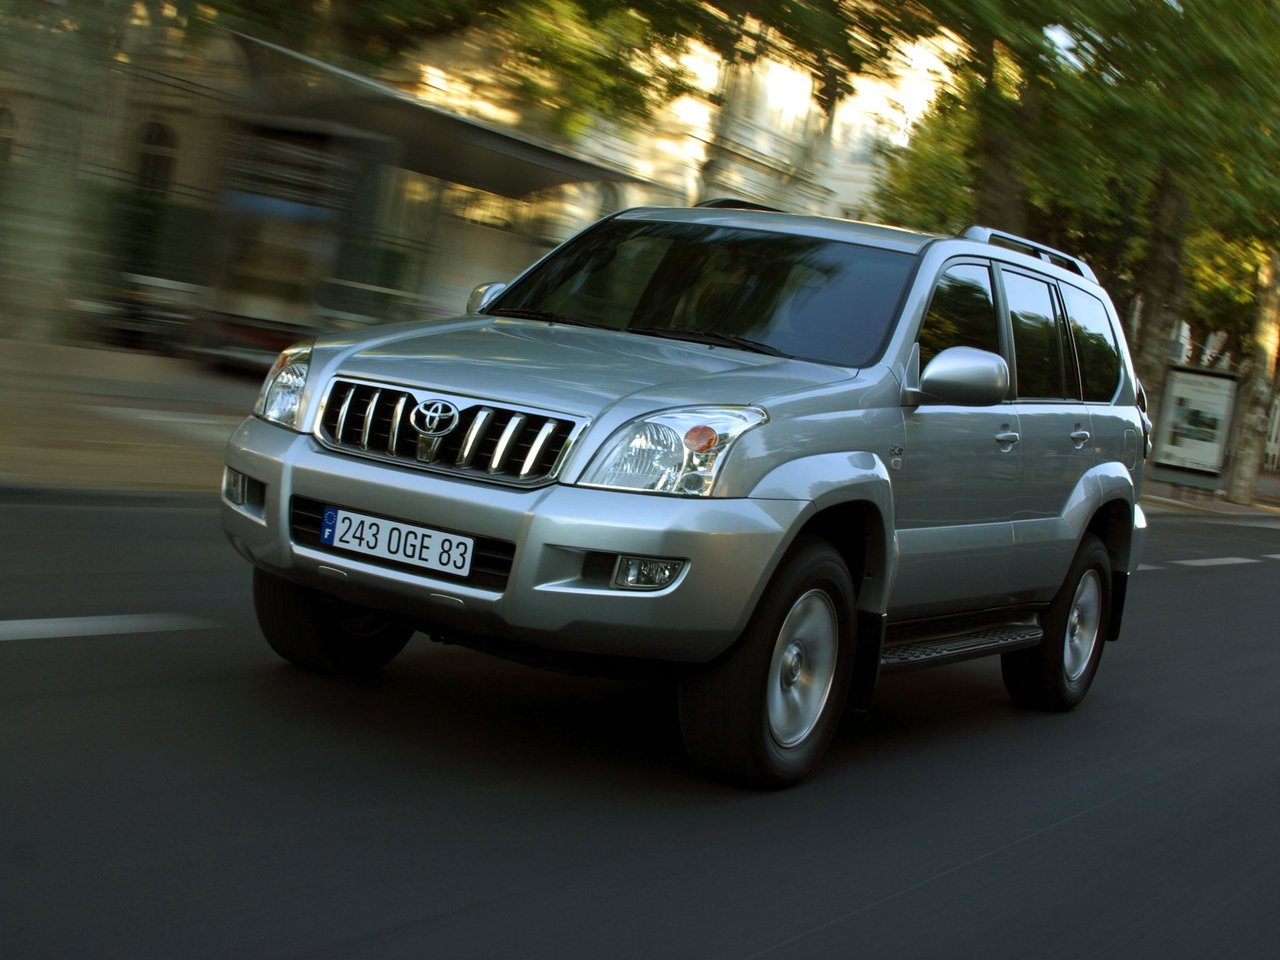 Автомобиль Toyota Land Cruiser Prado